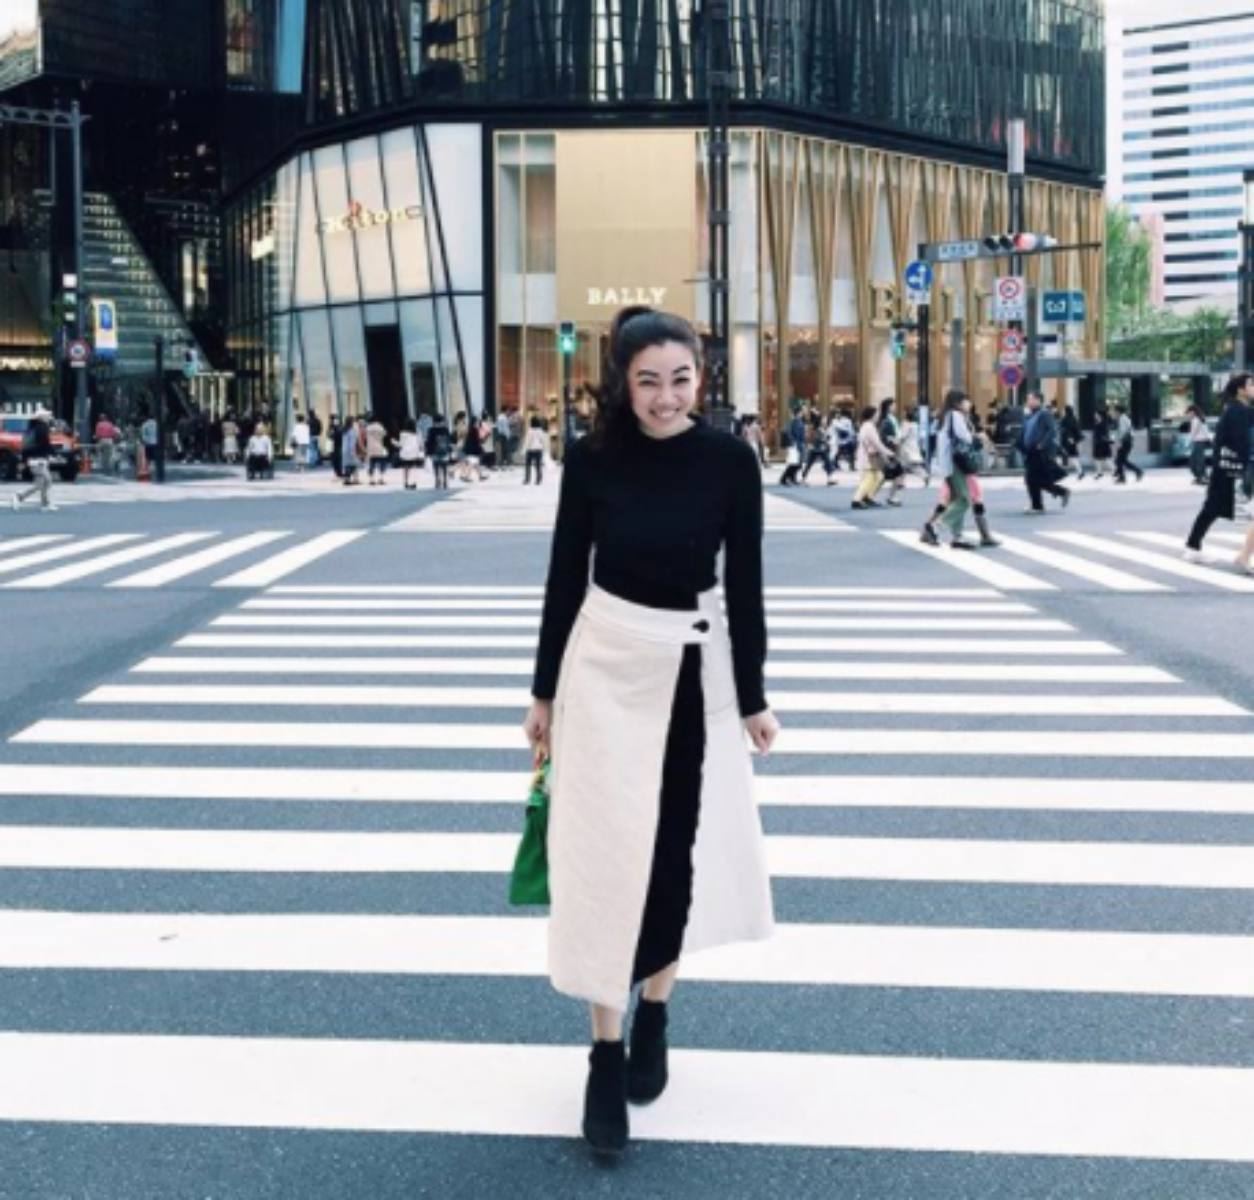 Sg Fashion: 5 Of The Best Singapore Fashion Instagrammers To Follow